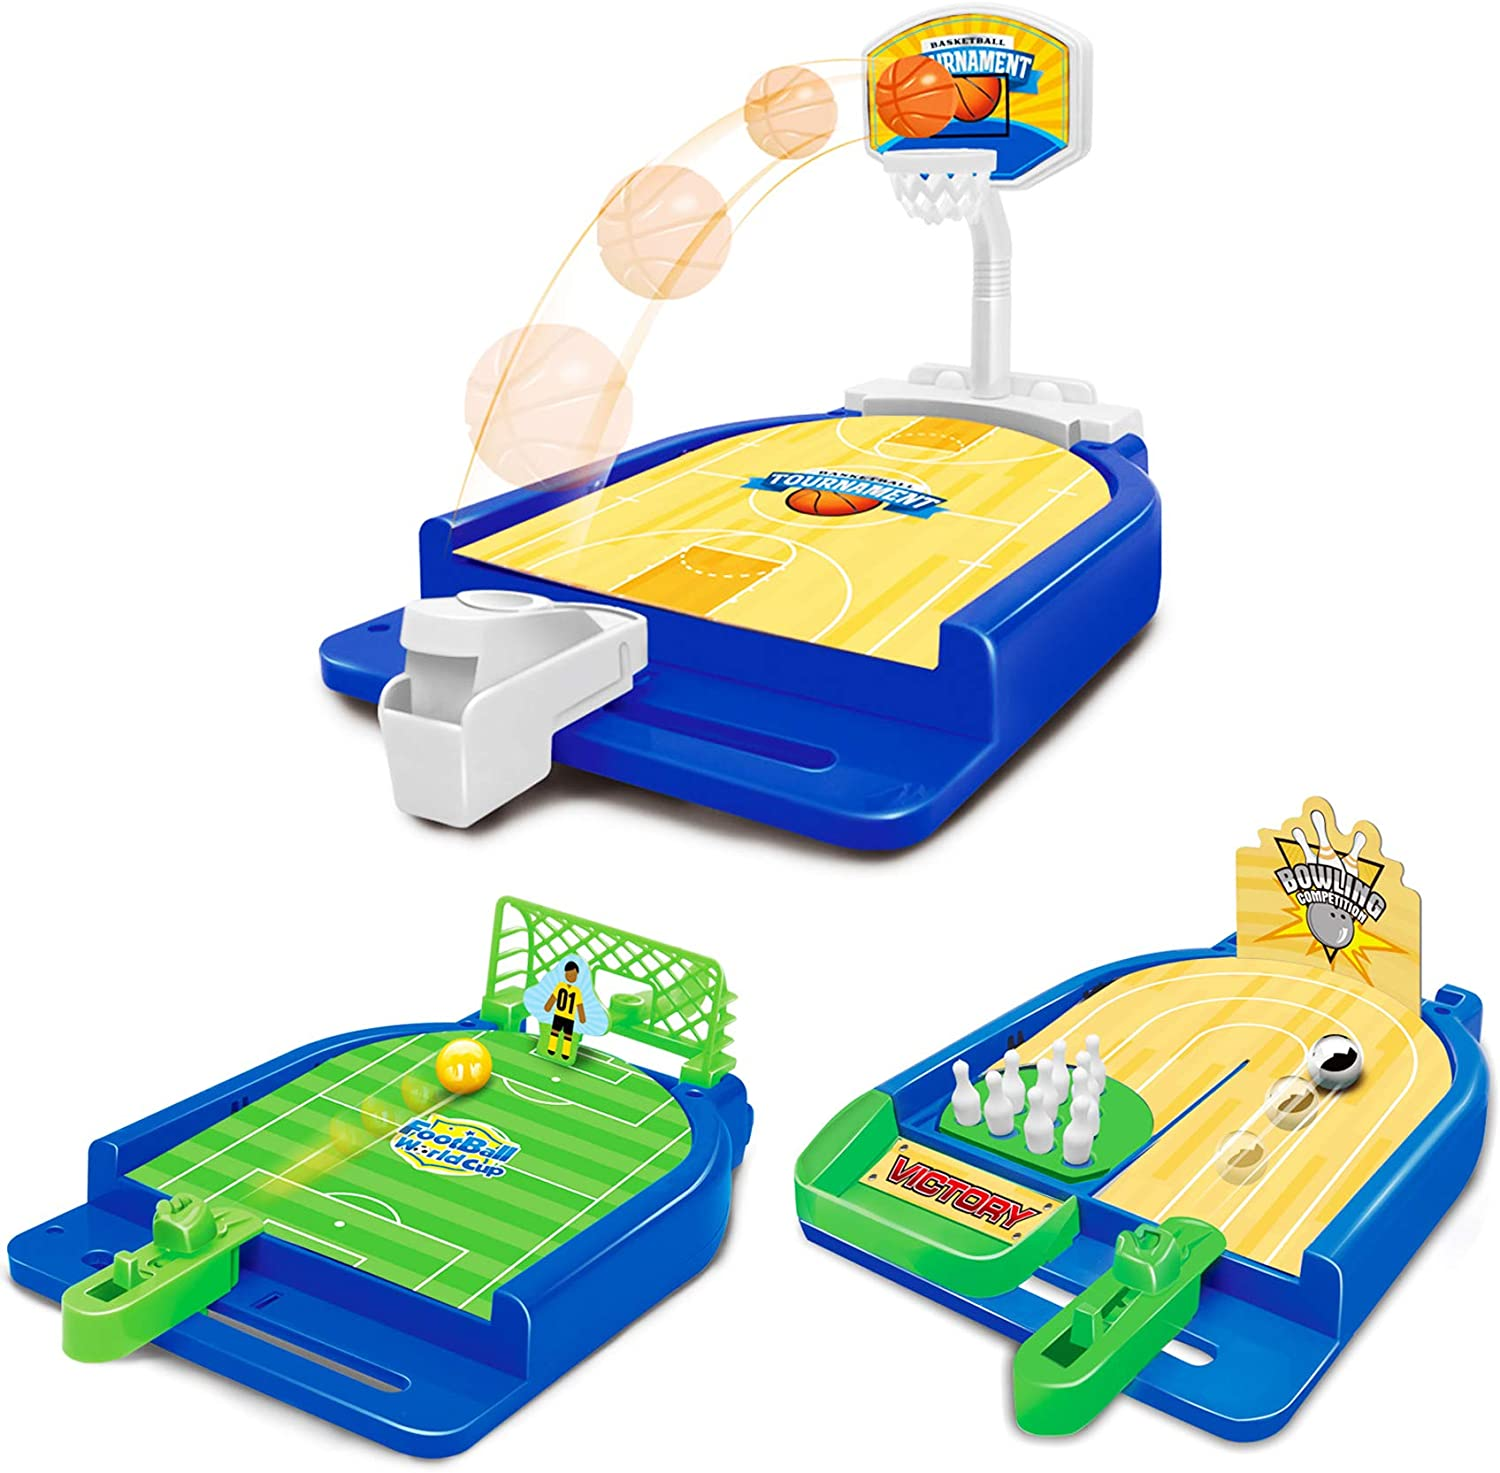 Sports Games Set 3 in 1 Mini Desktop Table Basketball Game Bowling Game Football Game,Fun Desktop Sports Toy,Suitable for Travel,Parties.